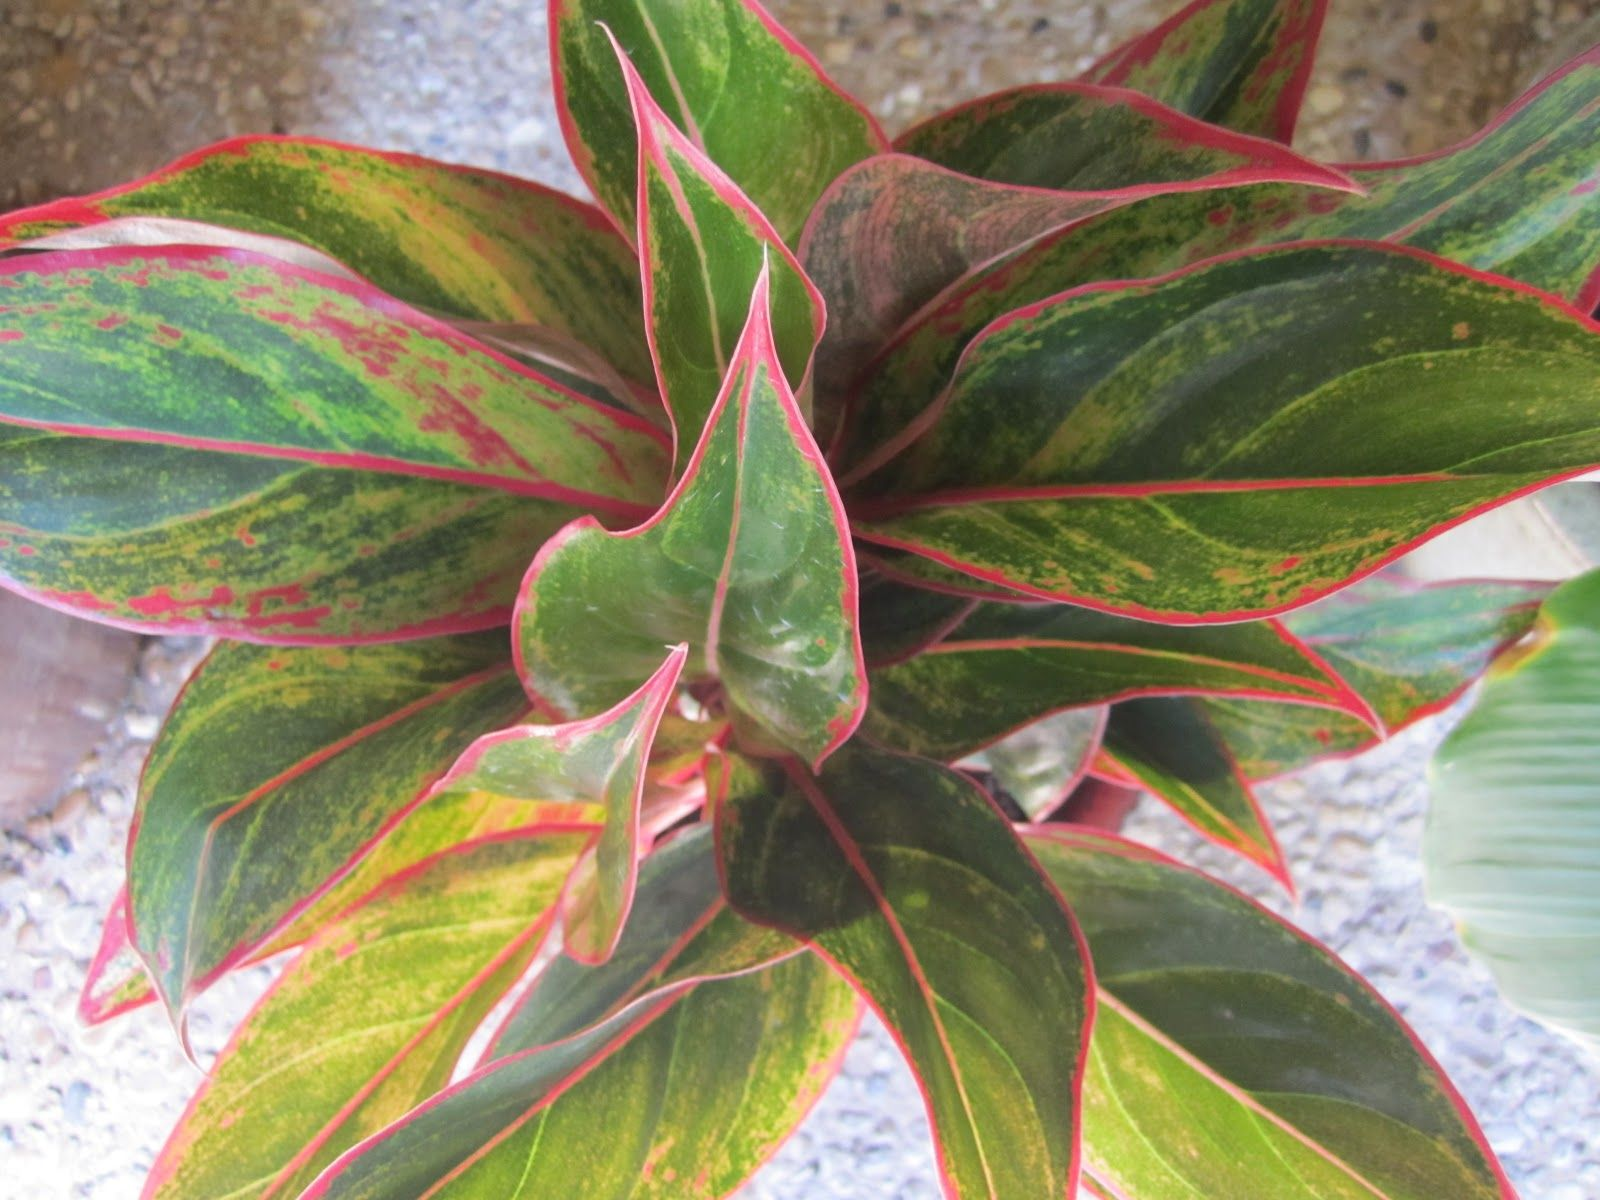 The Leaves Of Chinese Evergreen Are Broad And Full With A Deep Green Color Indoor Plantshouseplantsflower